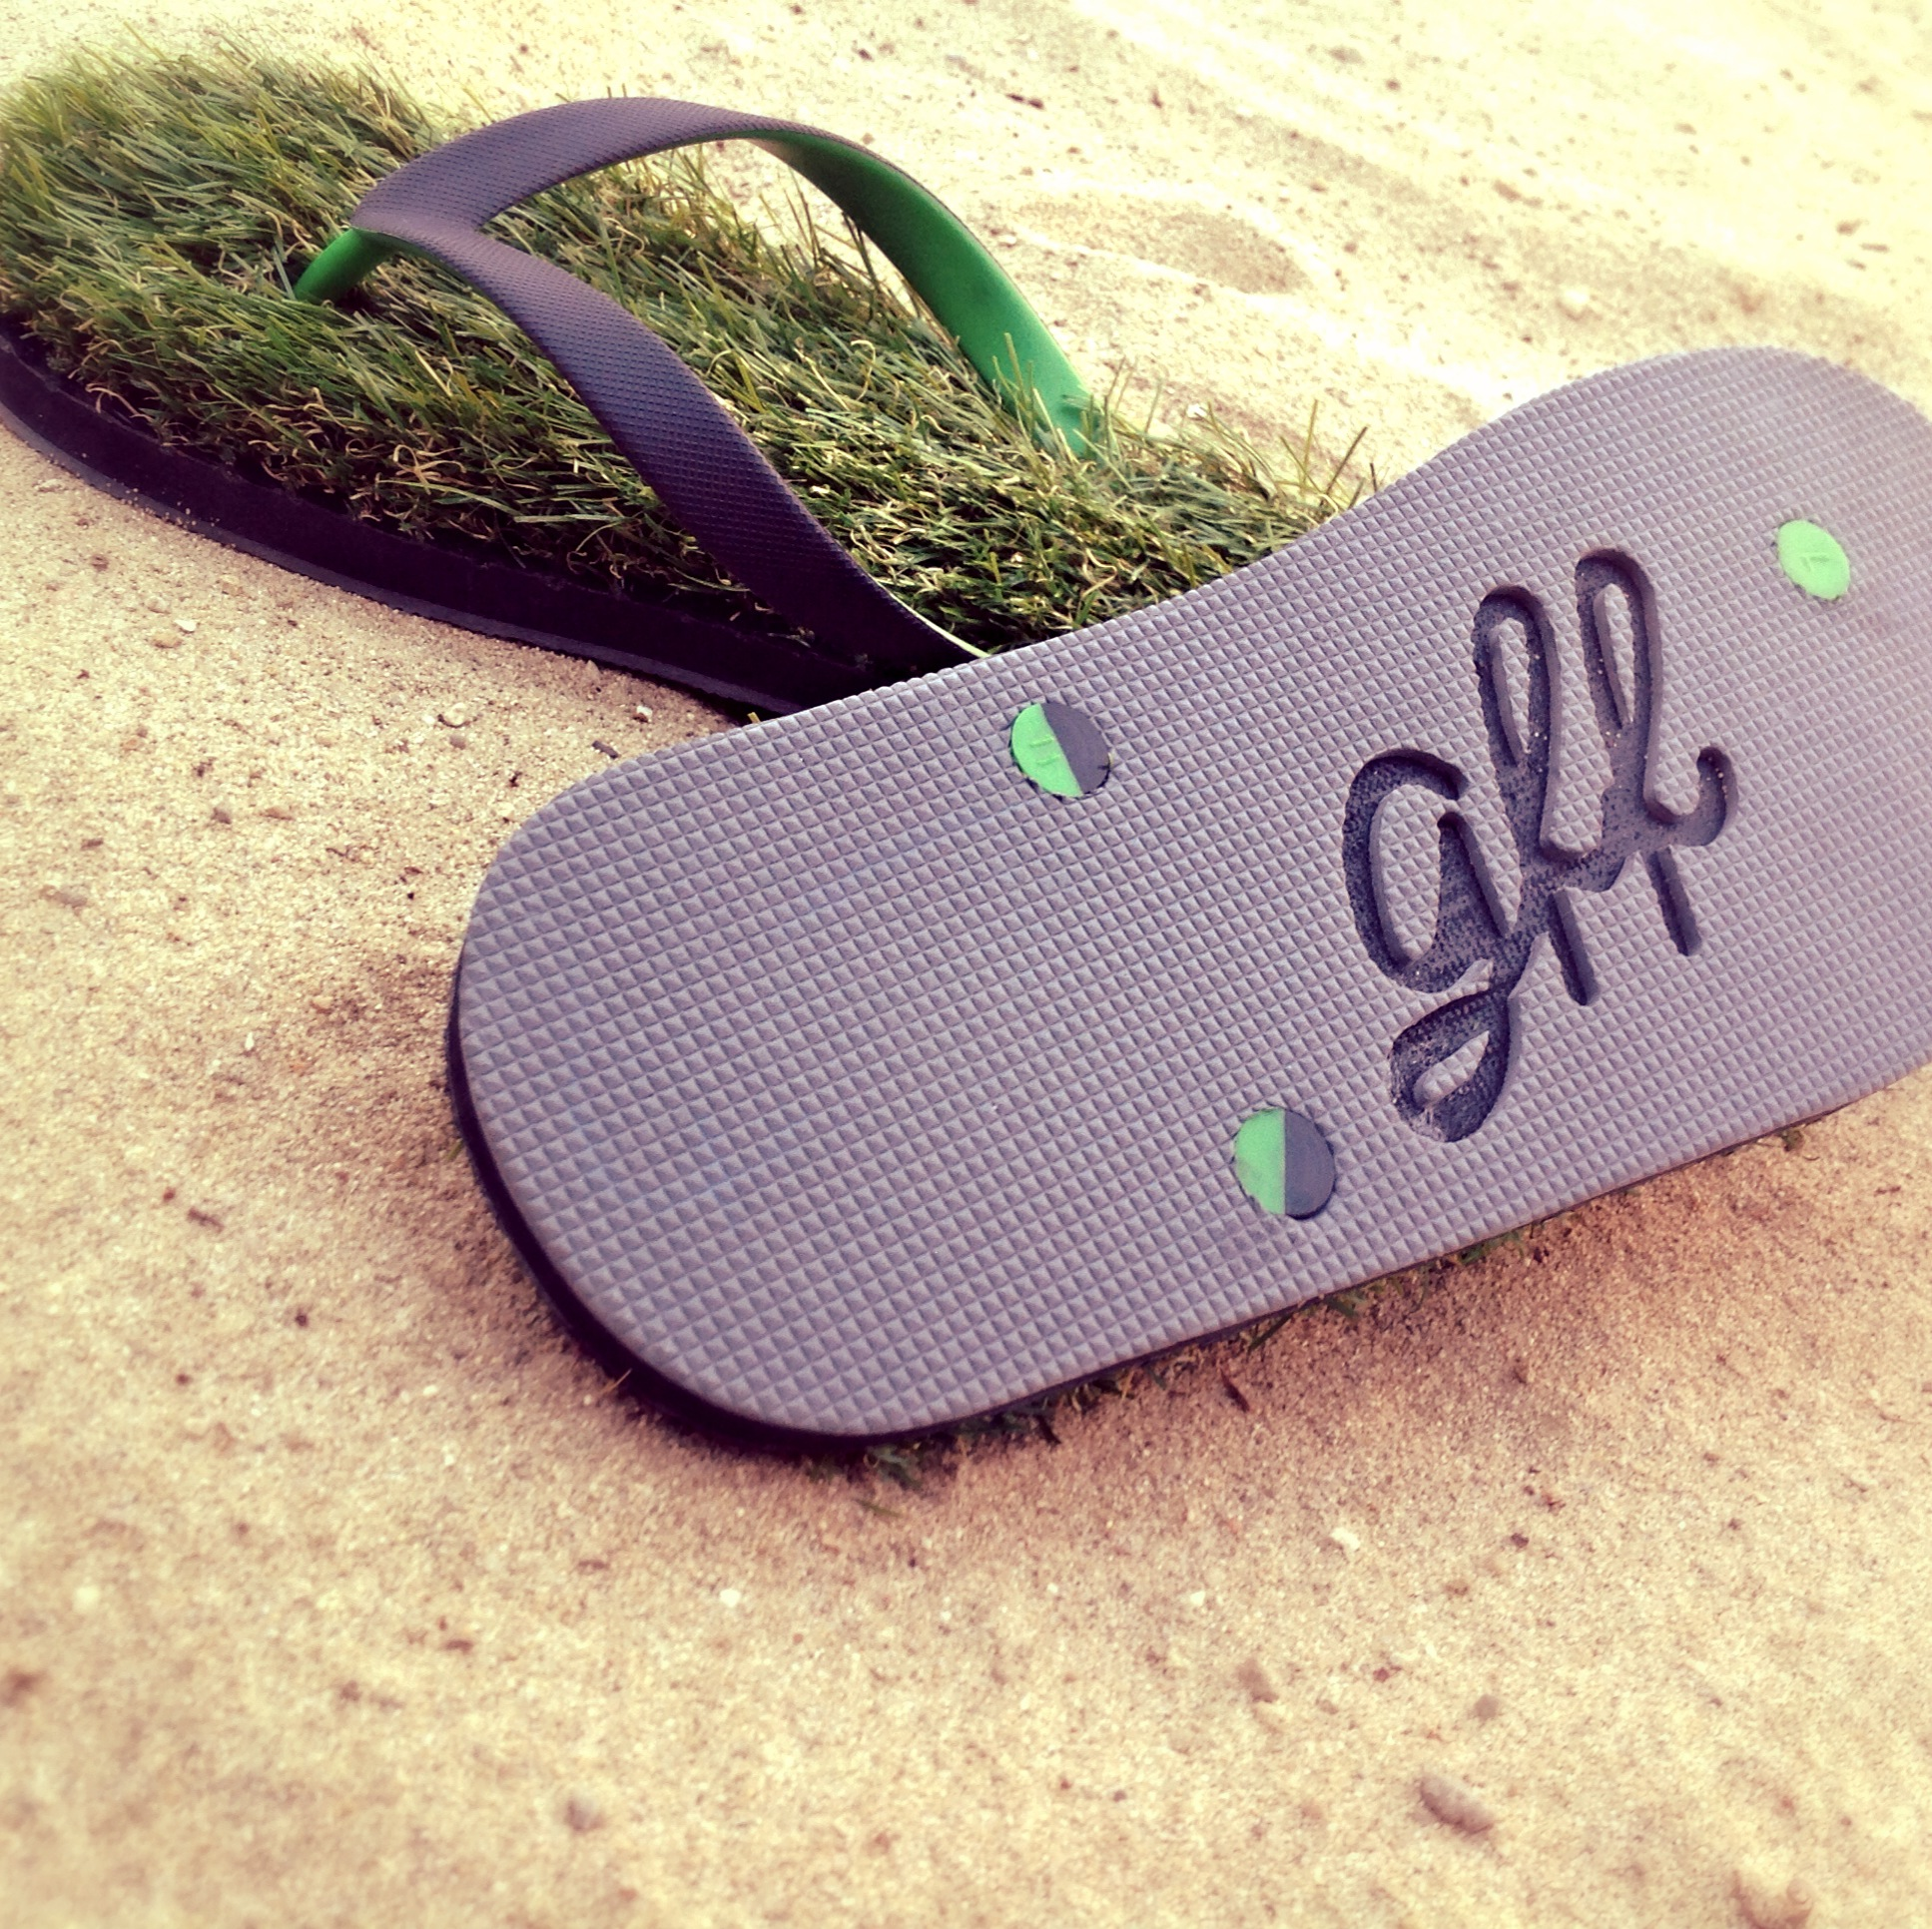 500b57a31 Grass Flip Flops are High Quality Durable Sandals